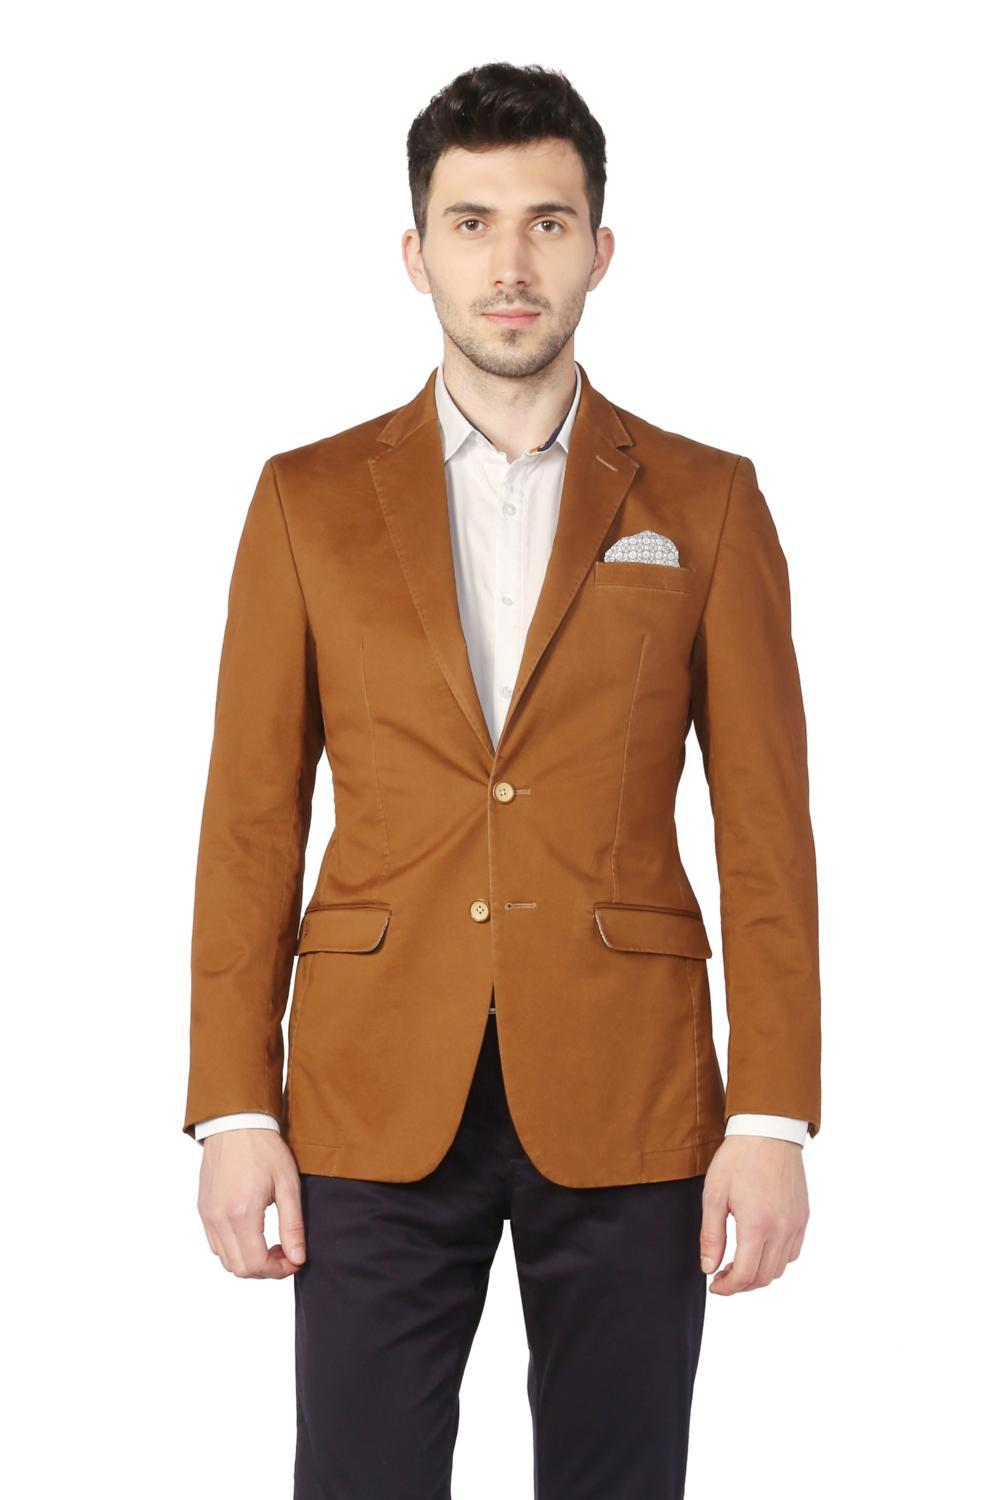 new products c3423 22a28 Allen Solly Suits & Blazers, Allen Solly Brown Blazer for Men at  Allensolly.com